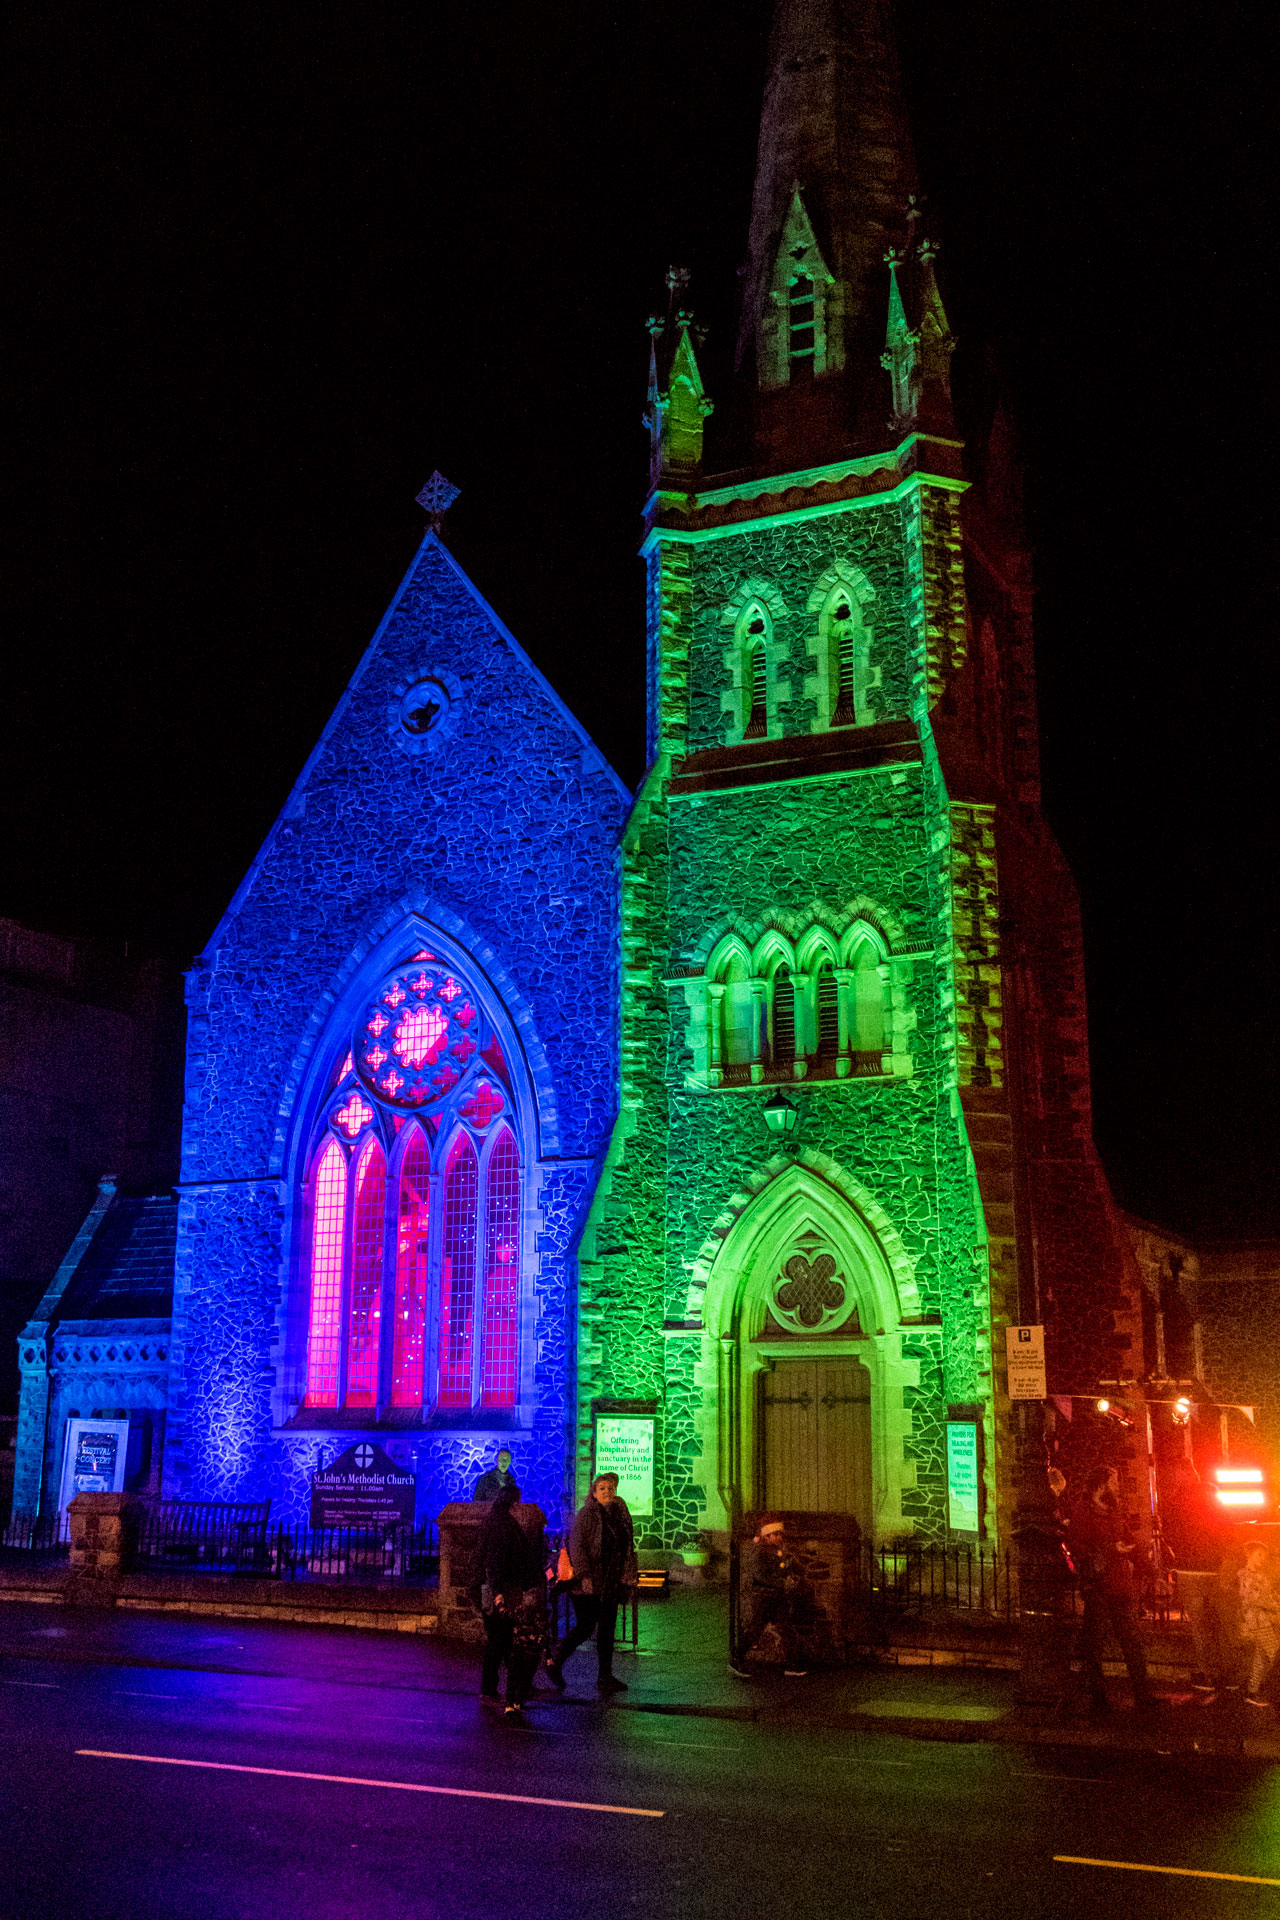 Coloured outdoor lighting at the Llandudno Winter Light / Golau Gaeaf event, in North Wales. St Johns Church on Mostyn Street is illuminated with blue and green weatherproof LED up lighting, with red lighting through the stained glass window.